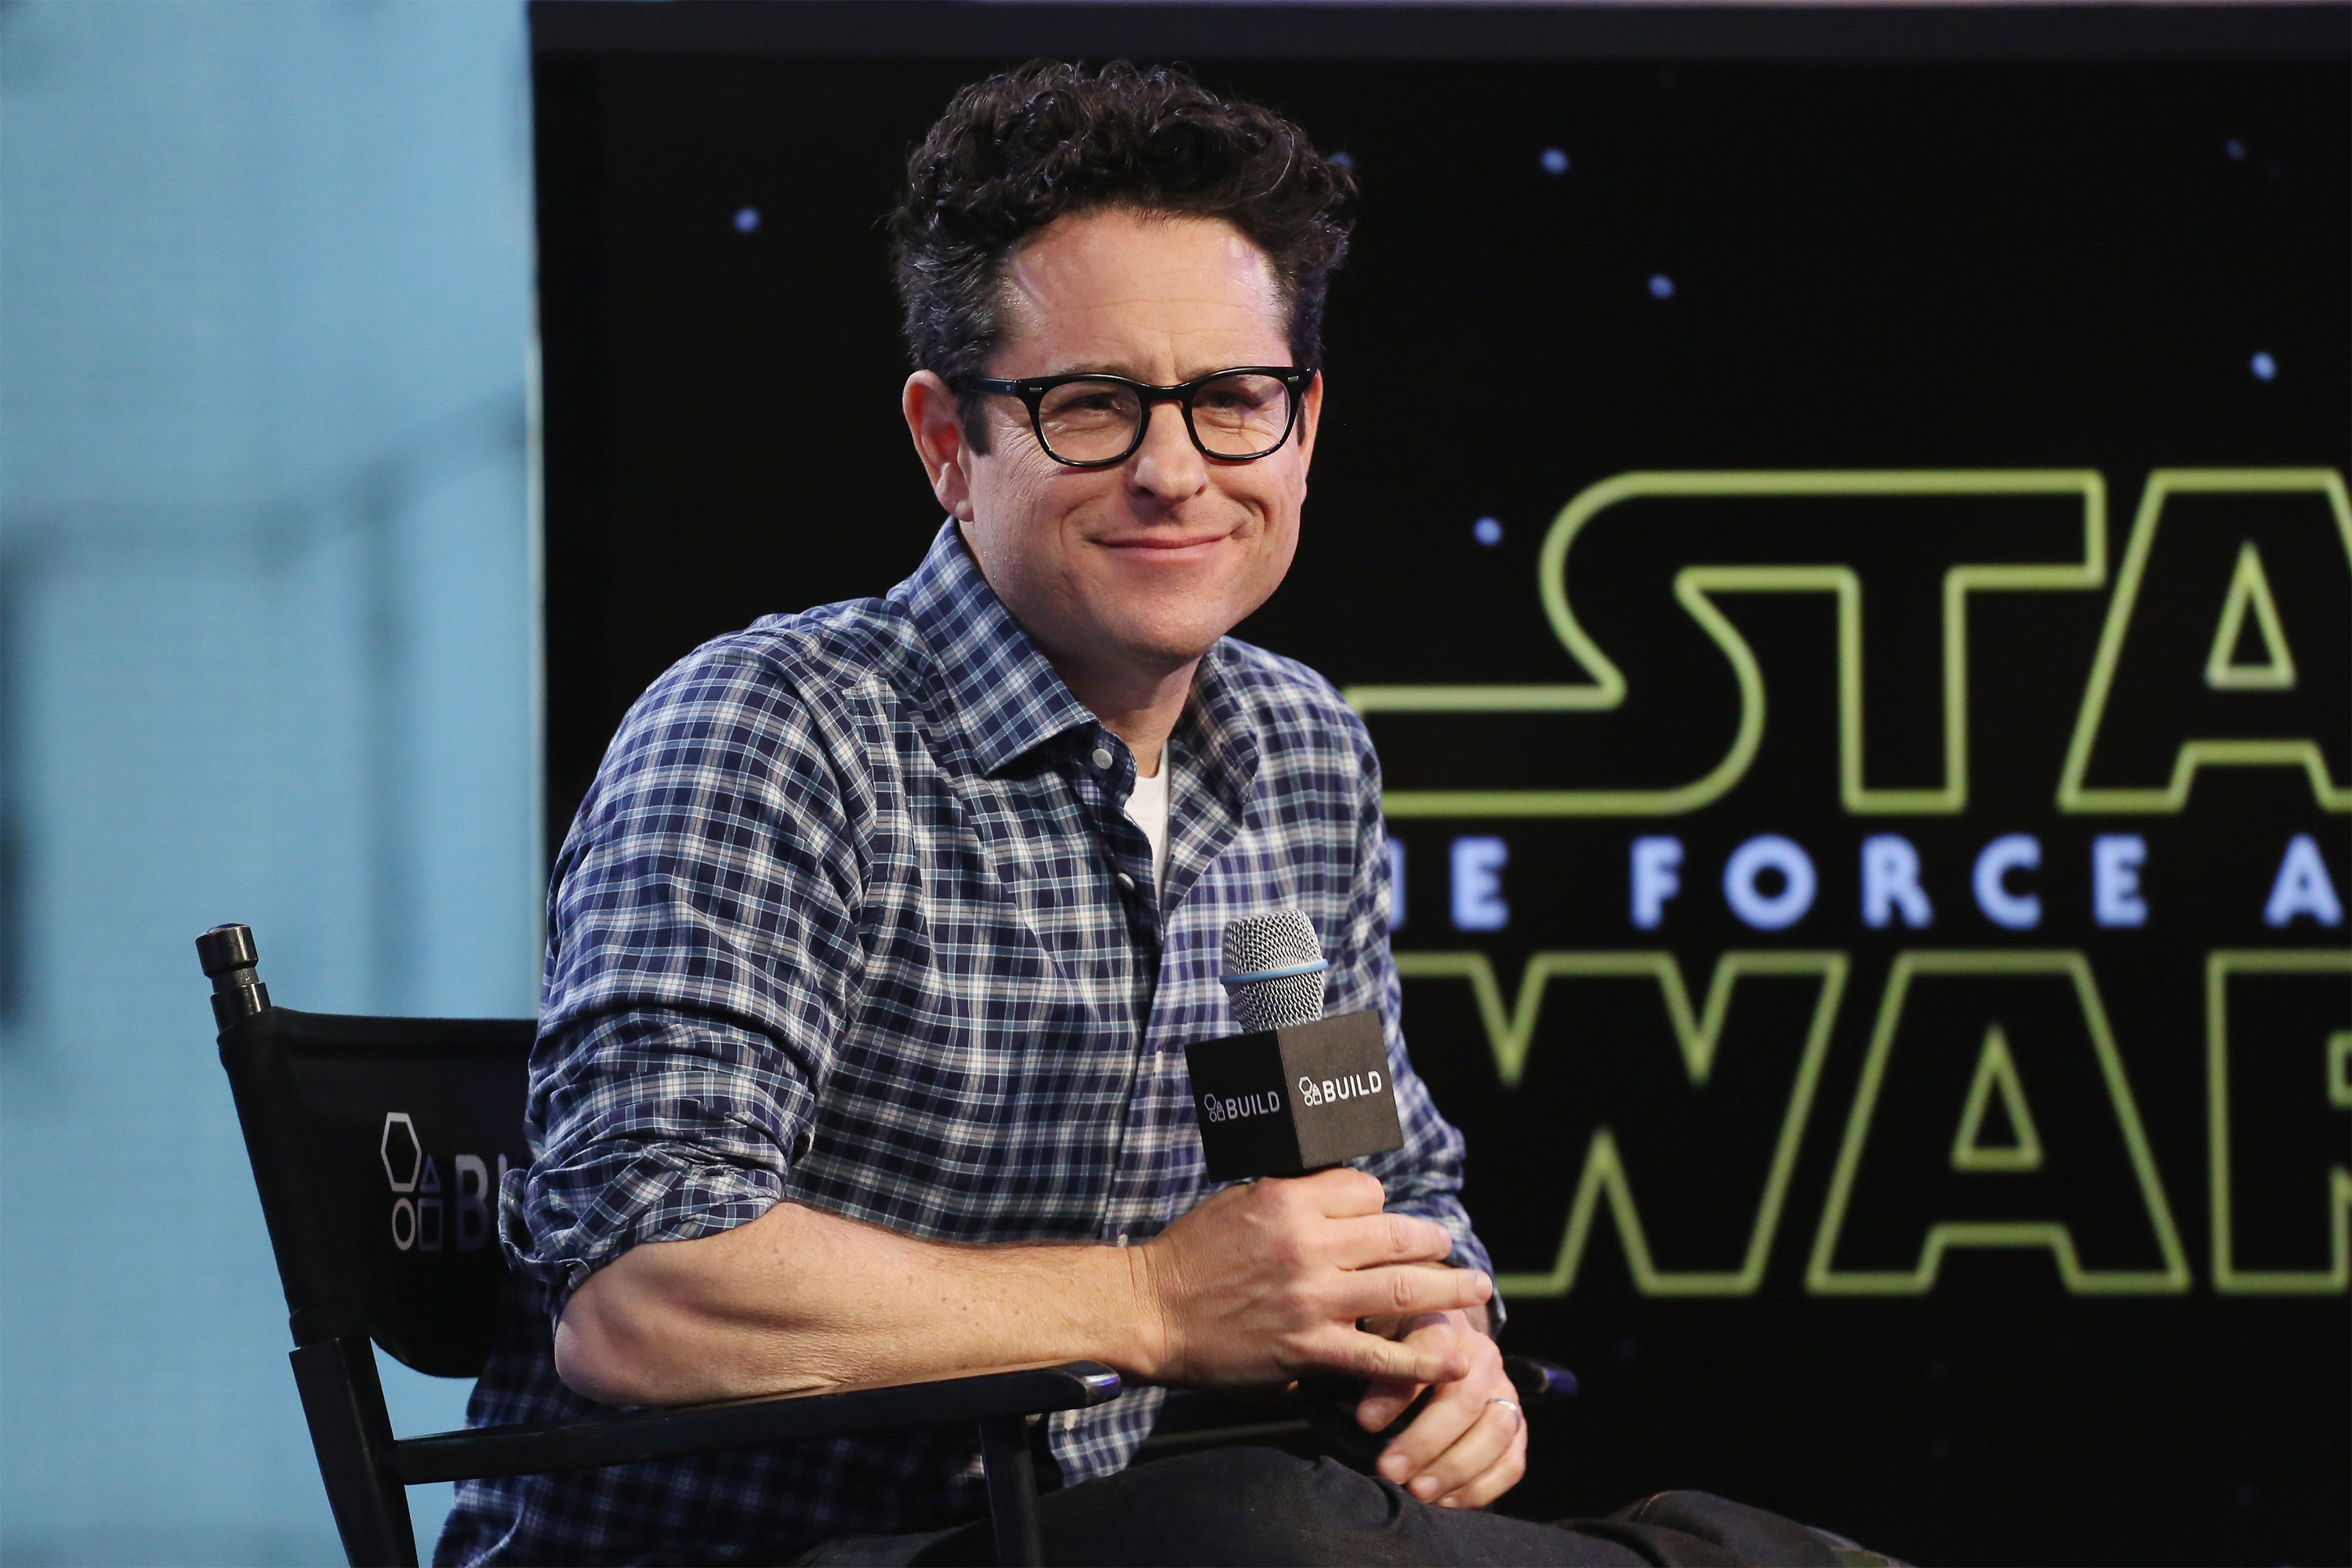 J.J. Abrams speaks at 'Star Wars: The Force Awakens' during the BUILD Series at AOL Studios In New York on Nove. 30, 2015 in New York City.